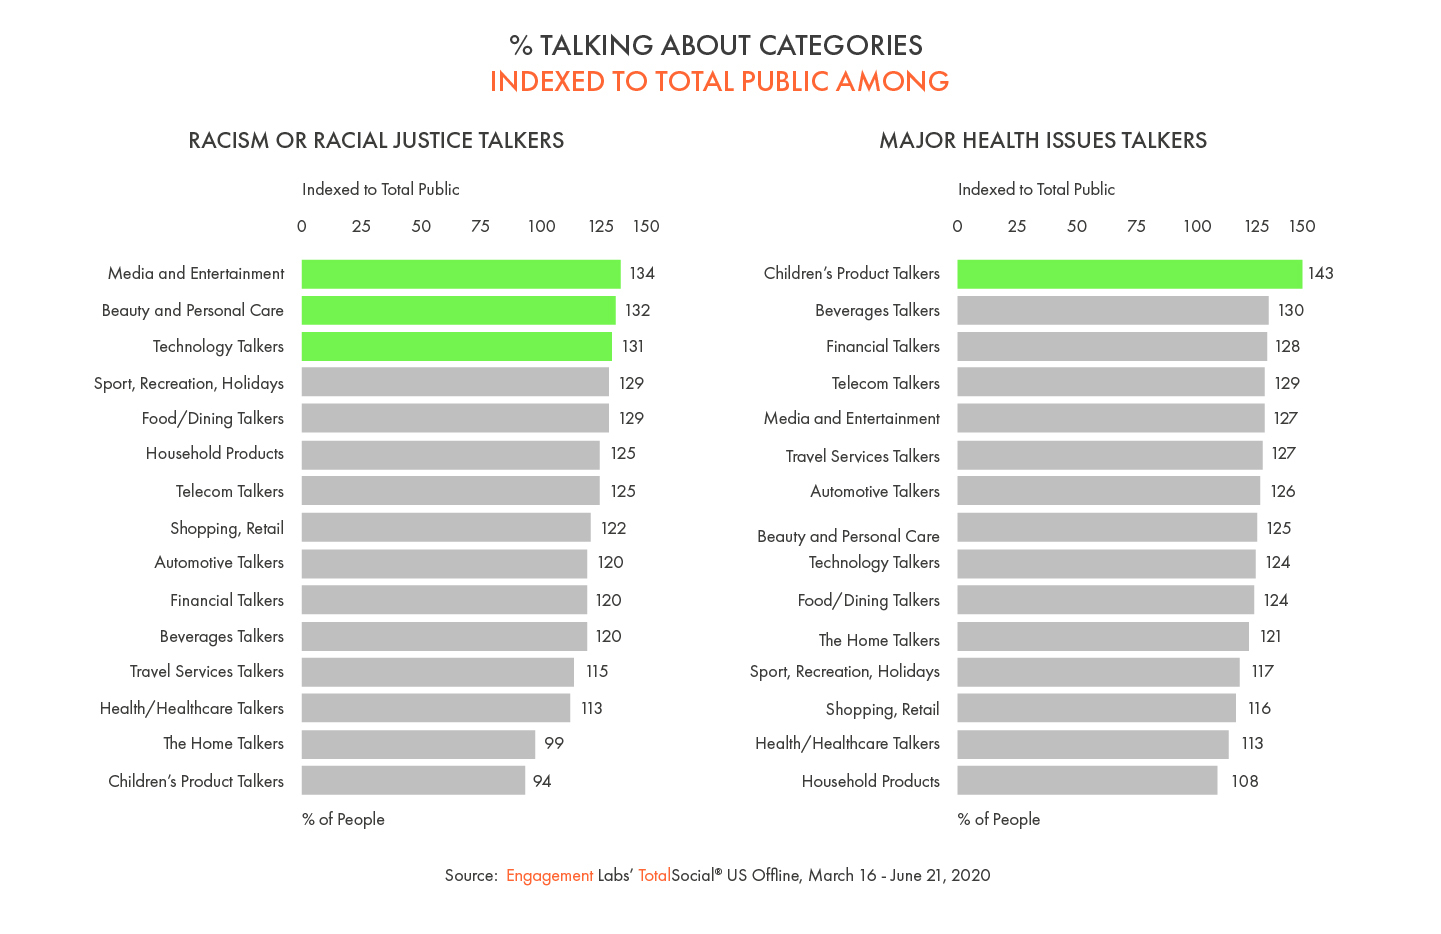 % of Issues Talkers Talking about Categories, Indexed to Total Public